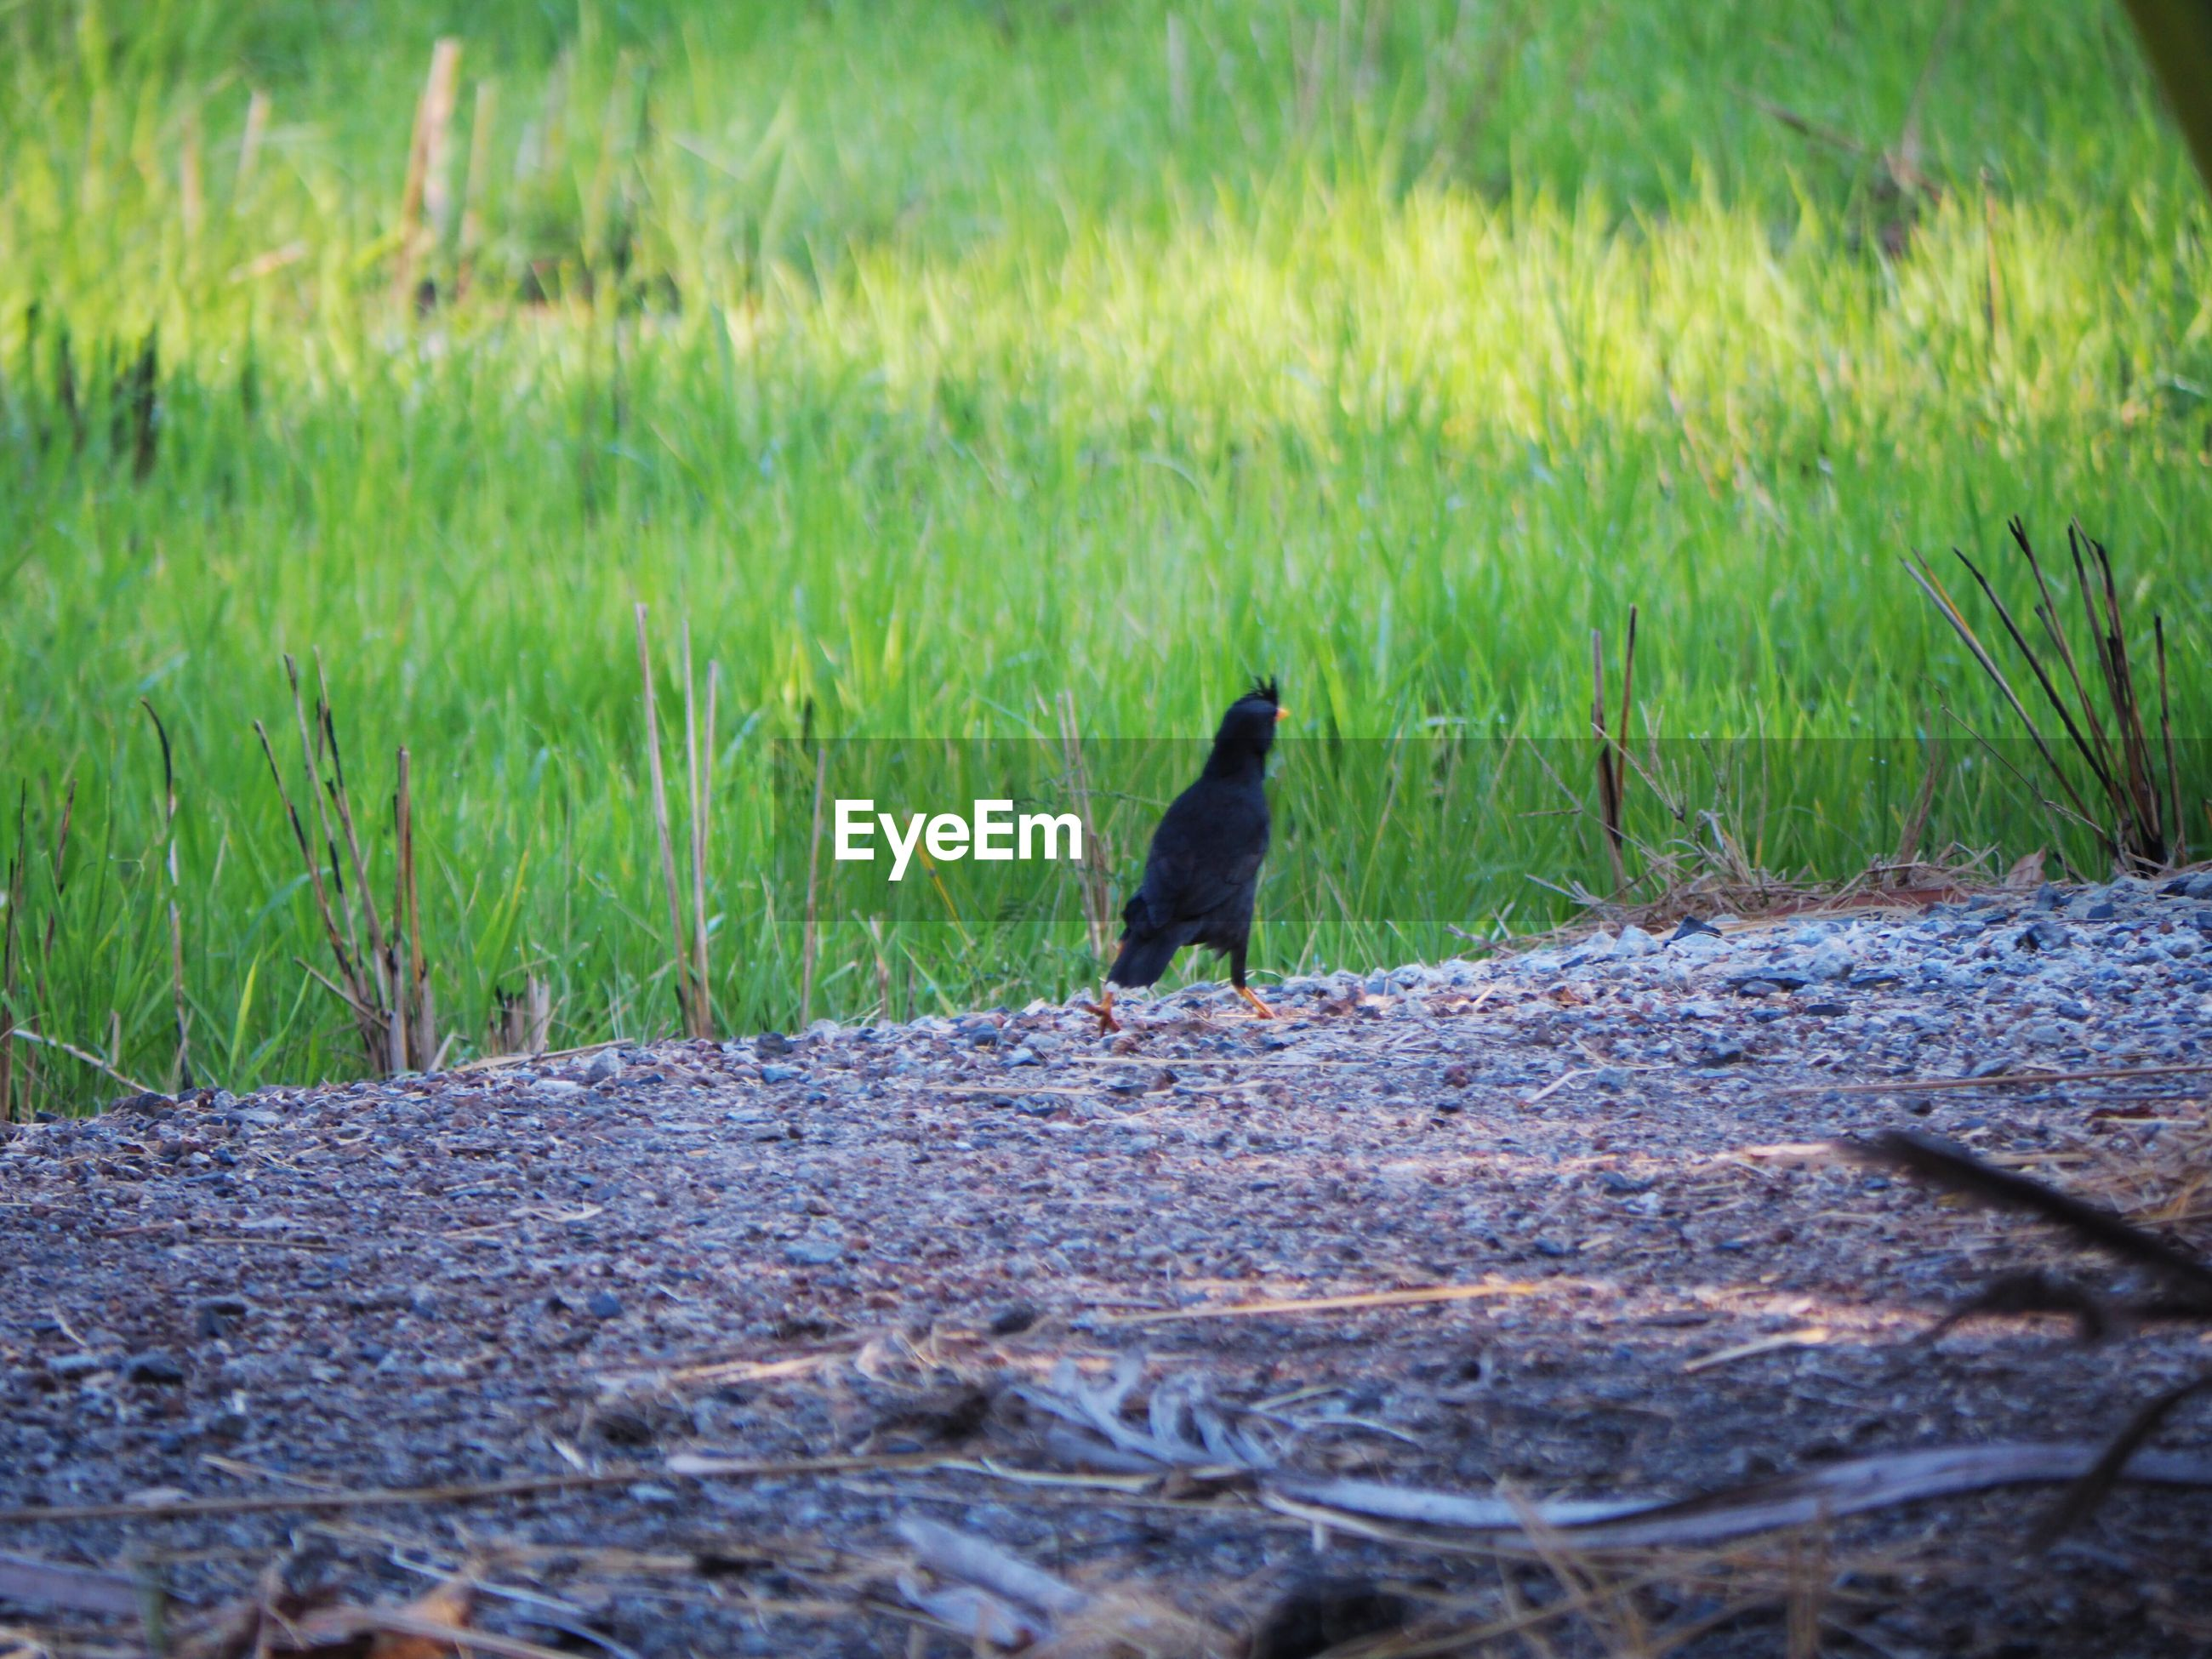 VIEW OF A BIRD SITTING ON FIELD